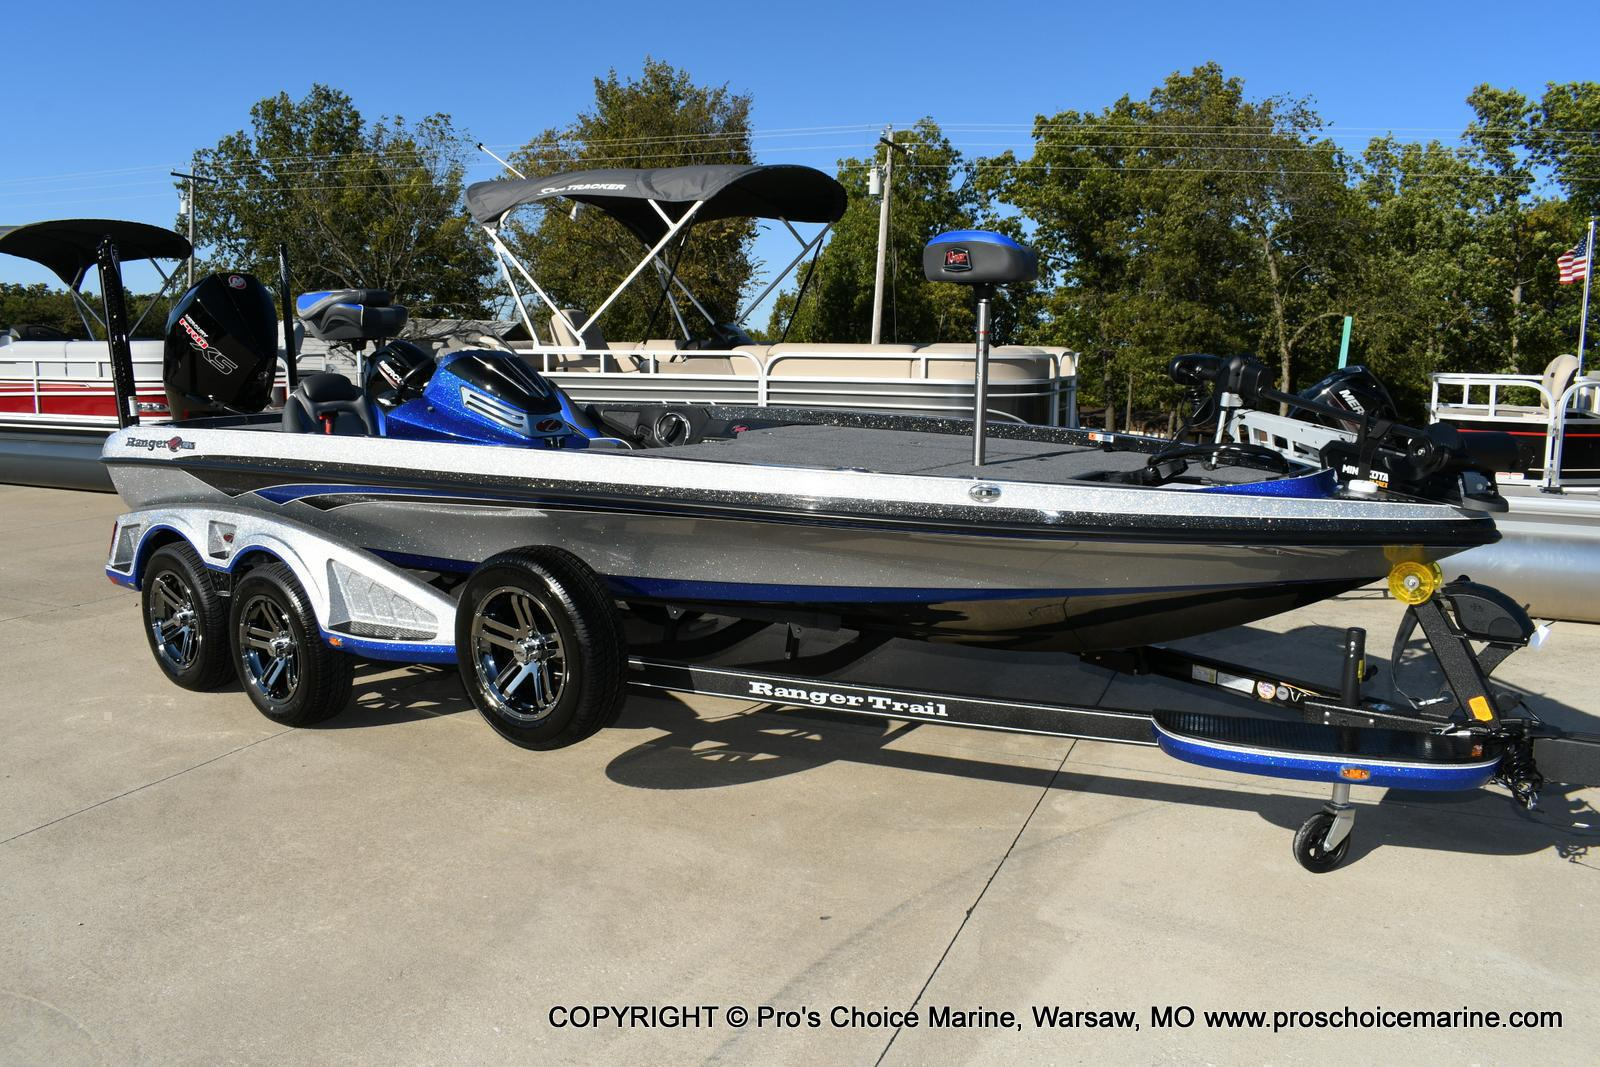 Ranger Z521C Ranger Cup Equipped